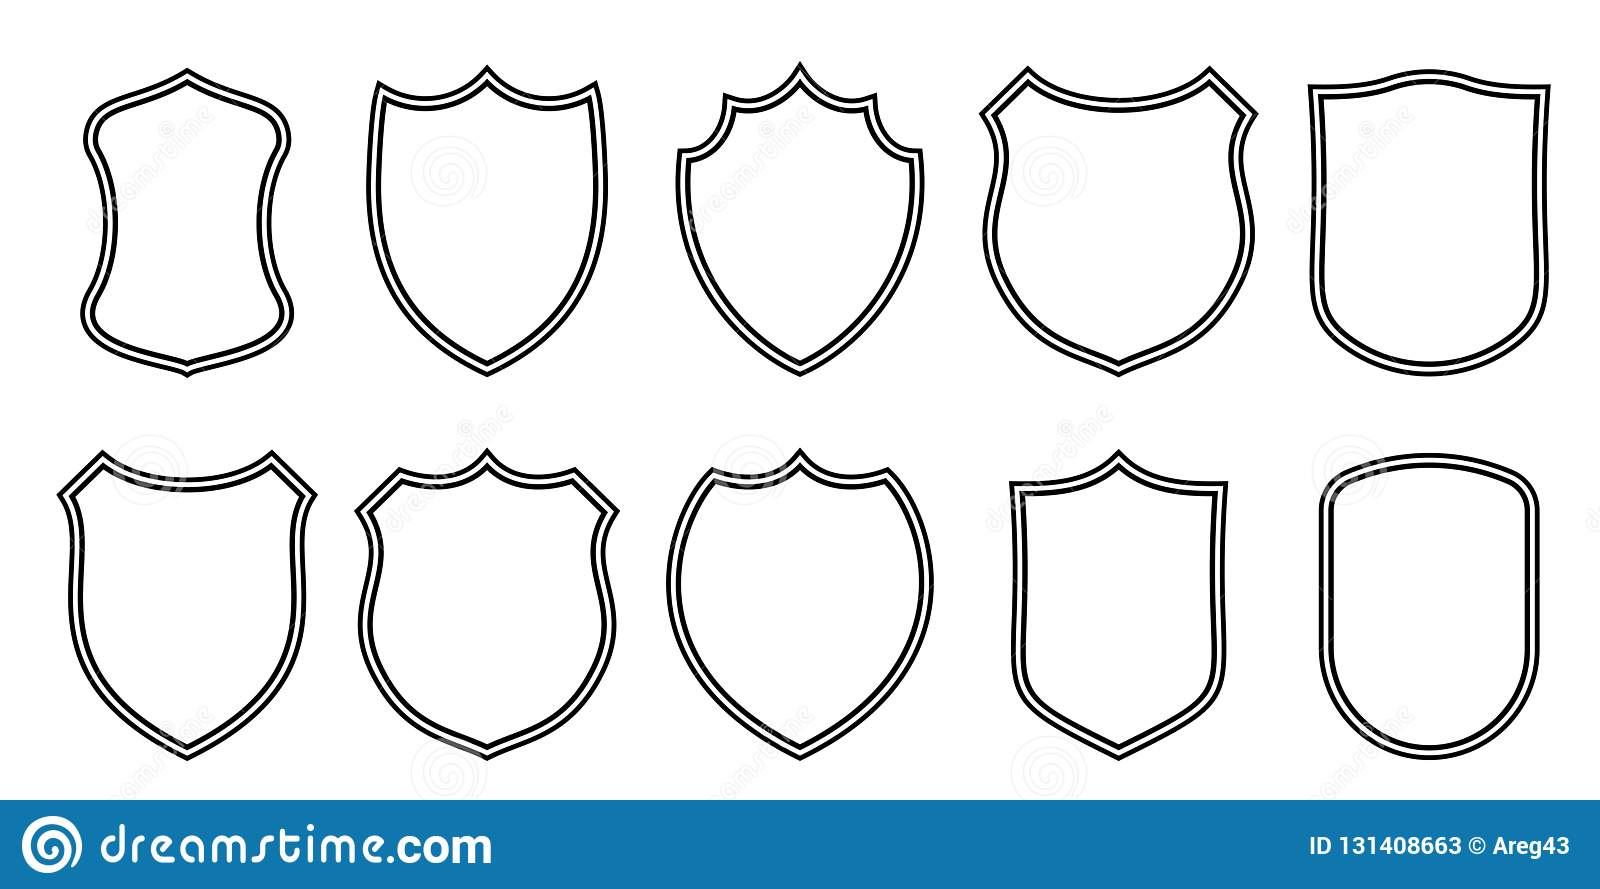 shield cartoons  illustrations  u0026 vector stock images